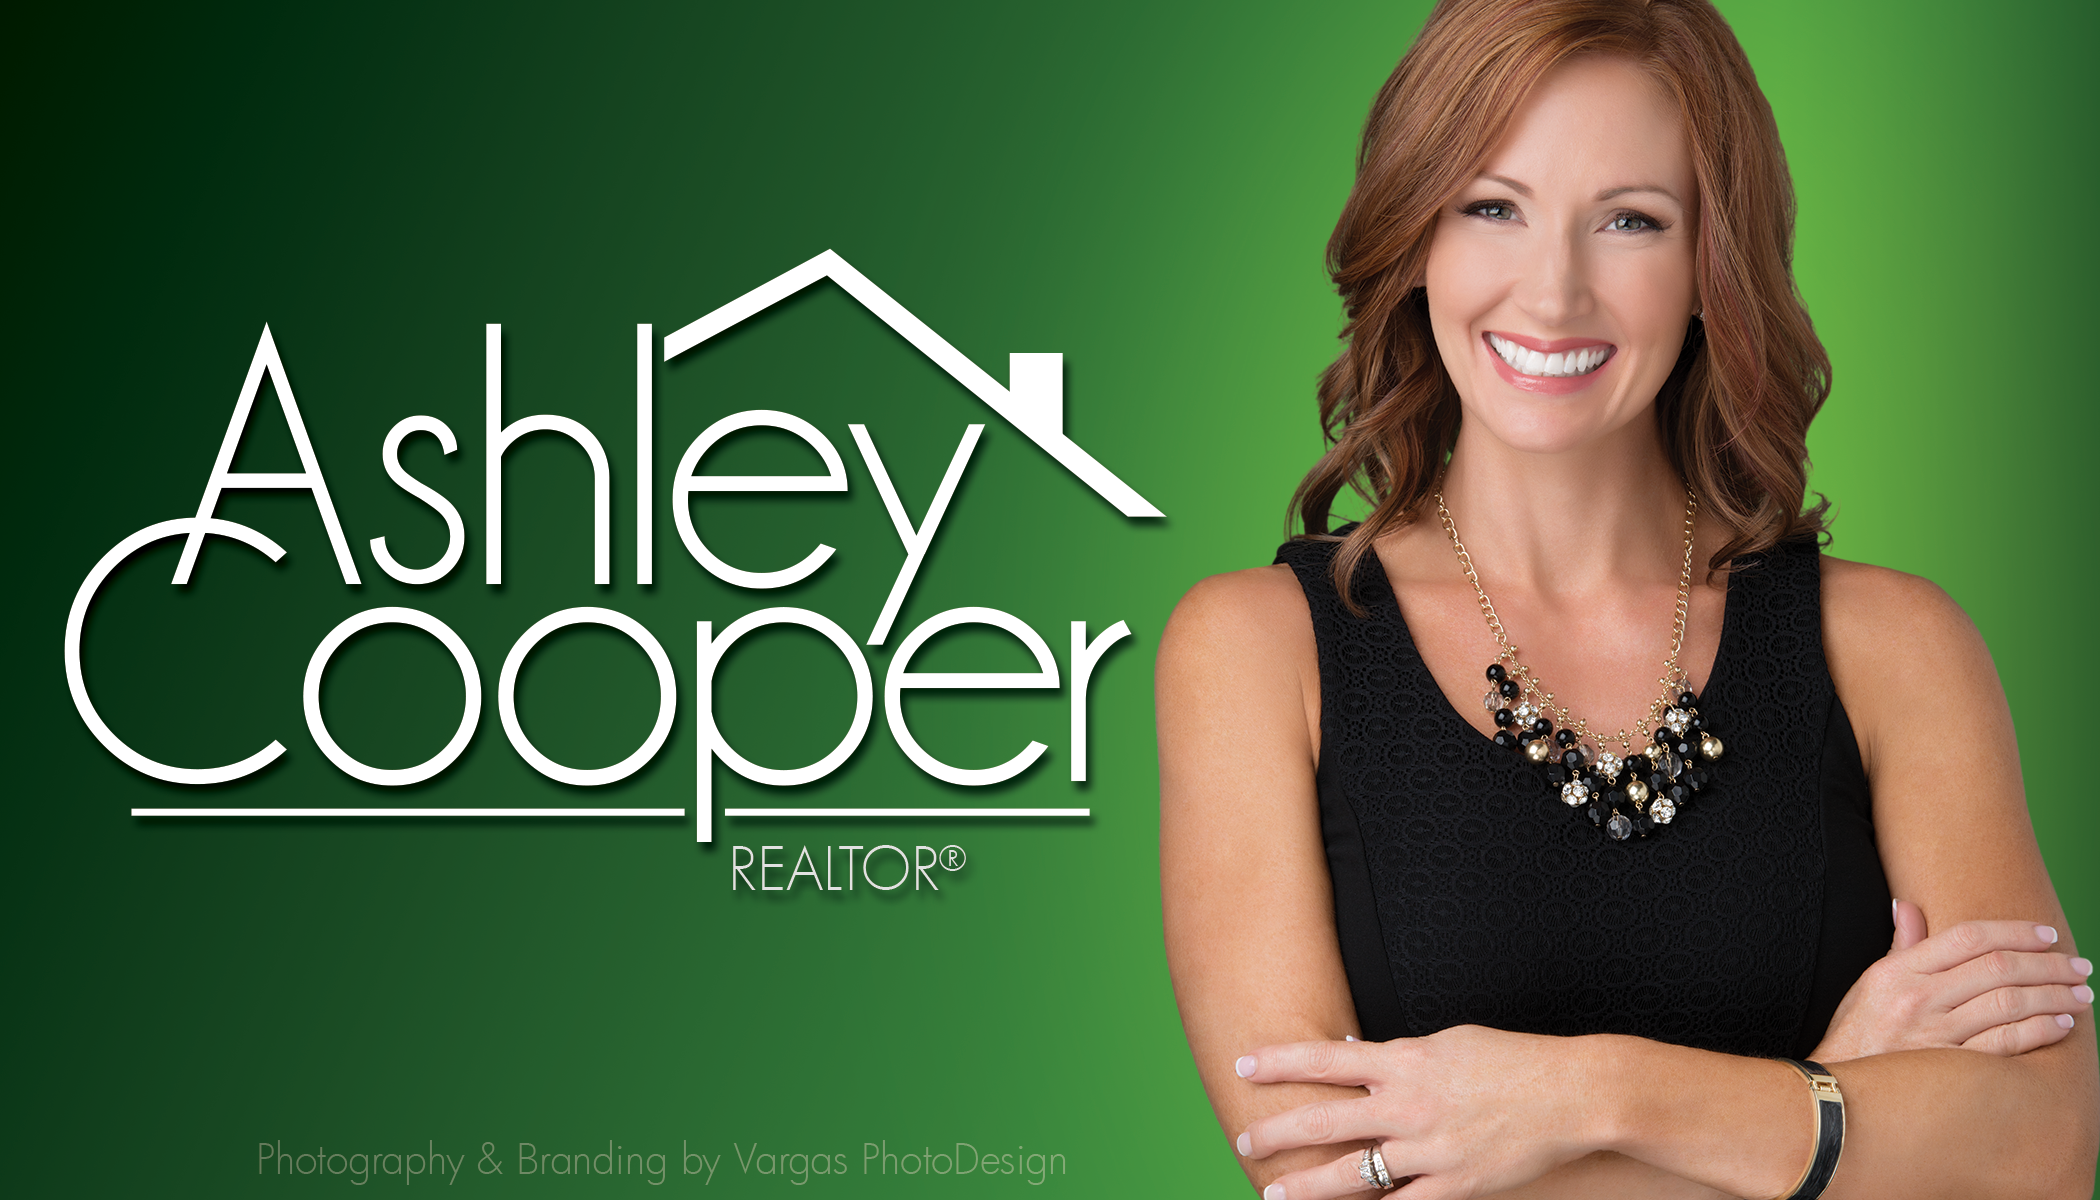 Ashley-Cooper-Reator-Branding-2.png